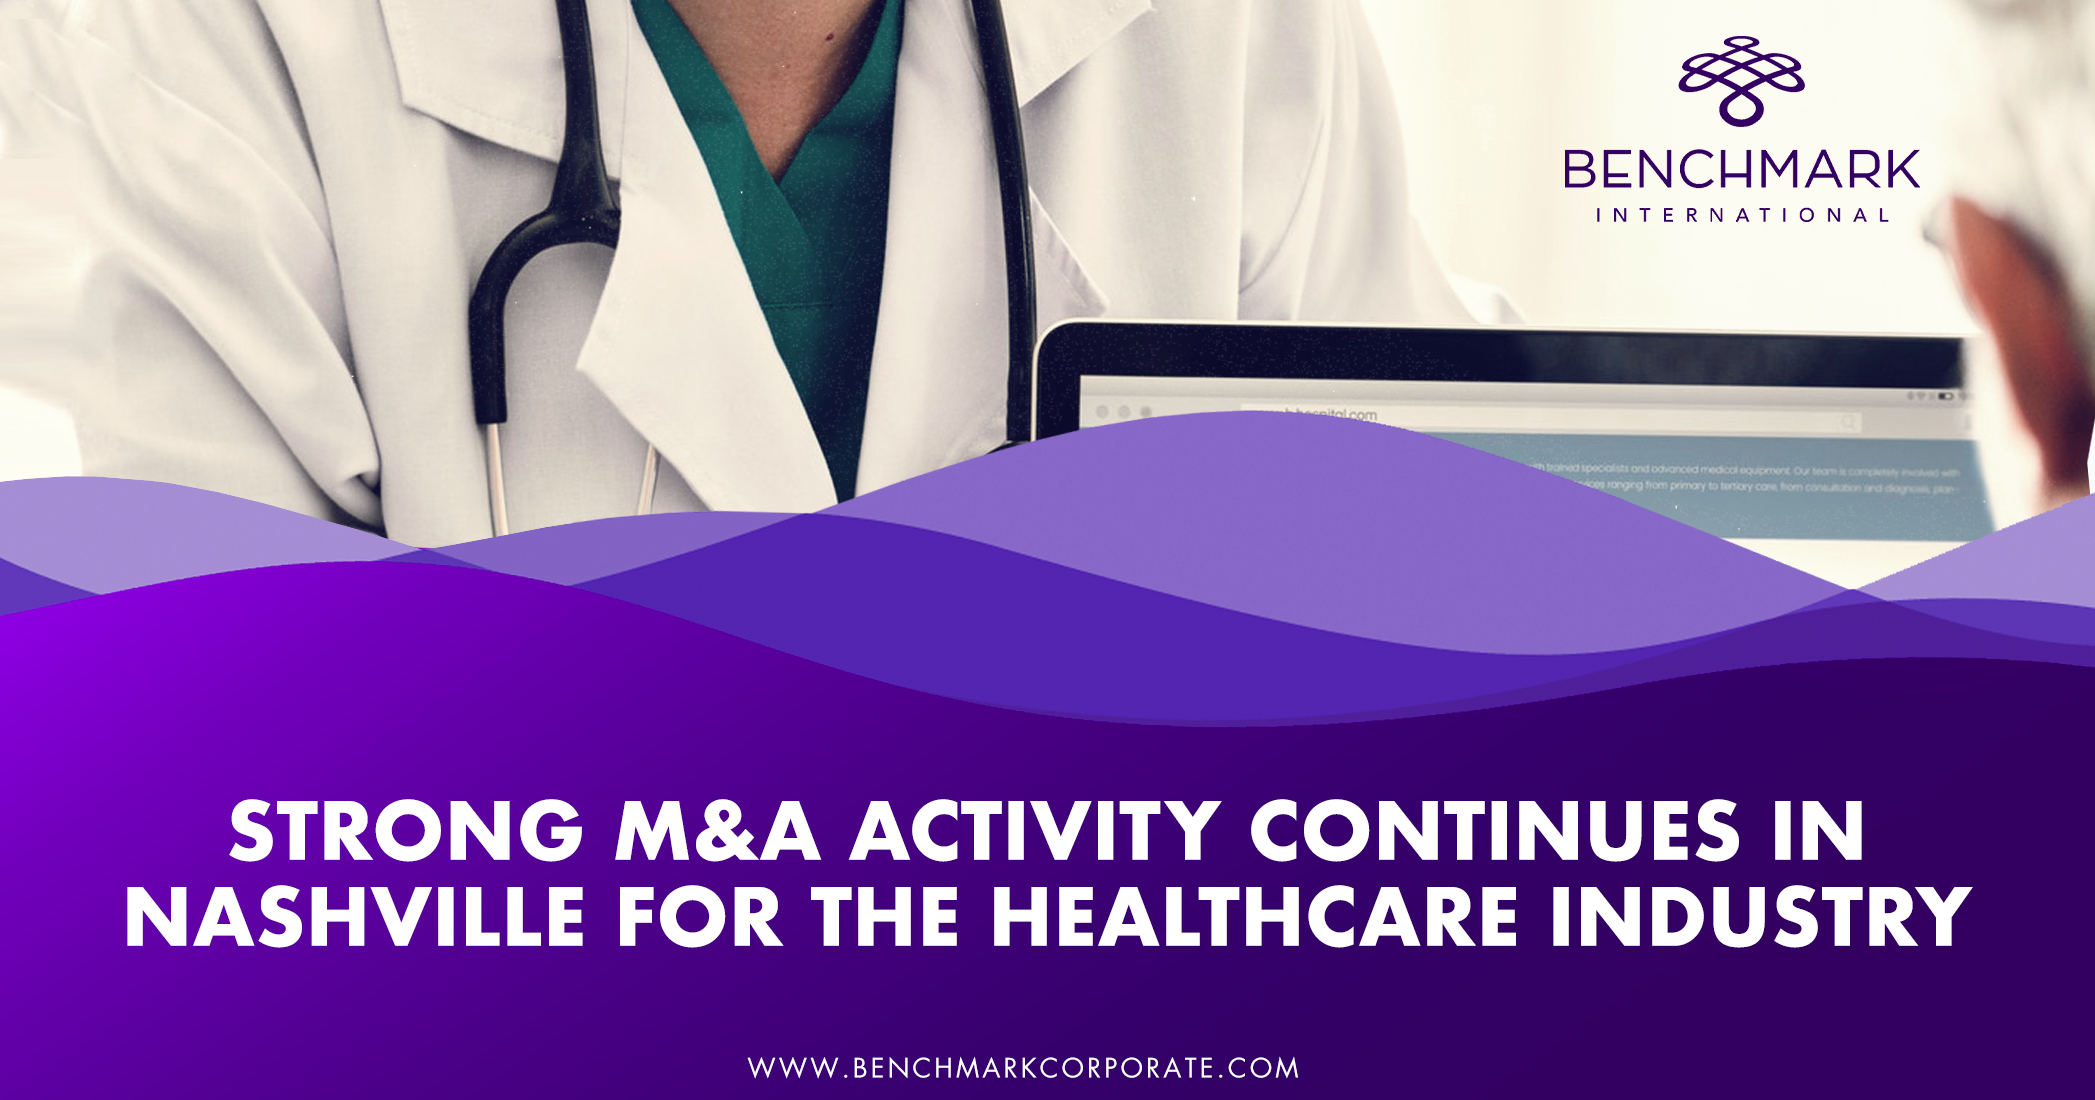 Strong M&A Activity Continues In Nashville For The Healthcare Industry